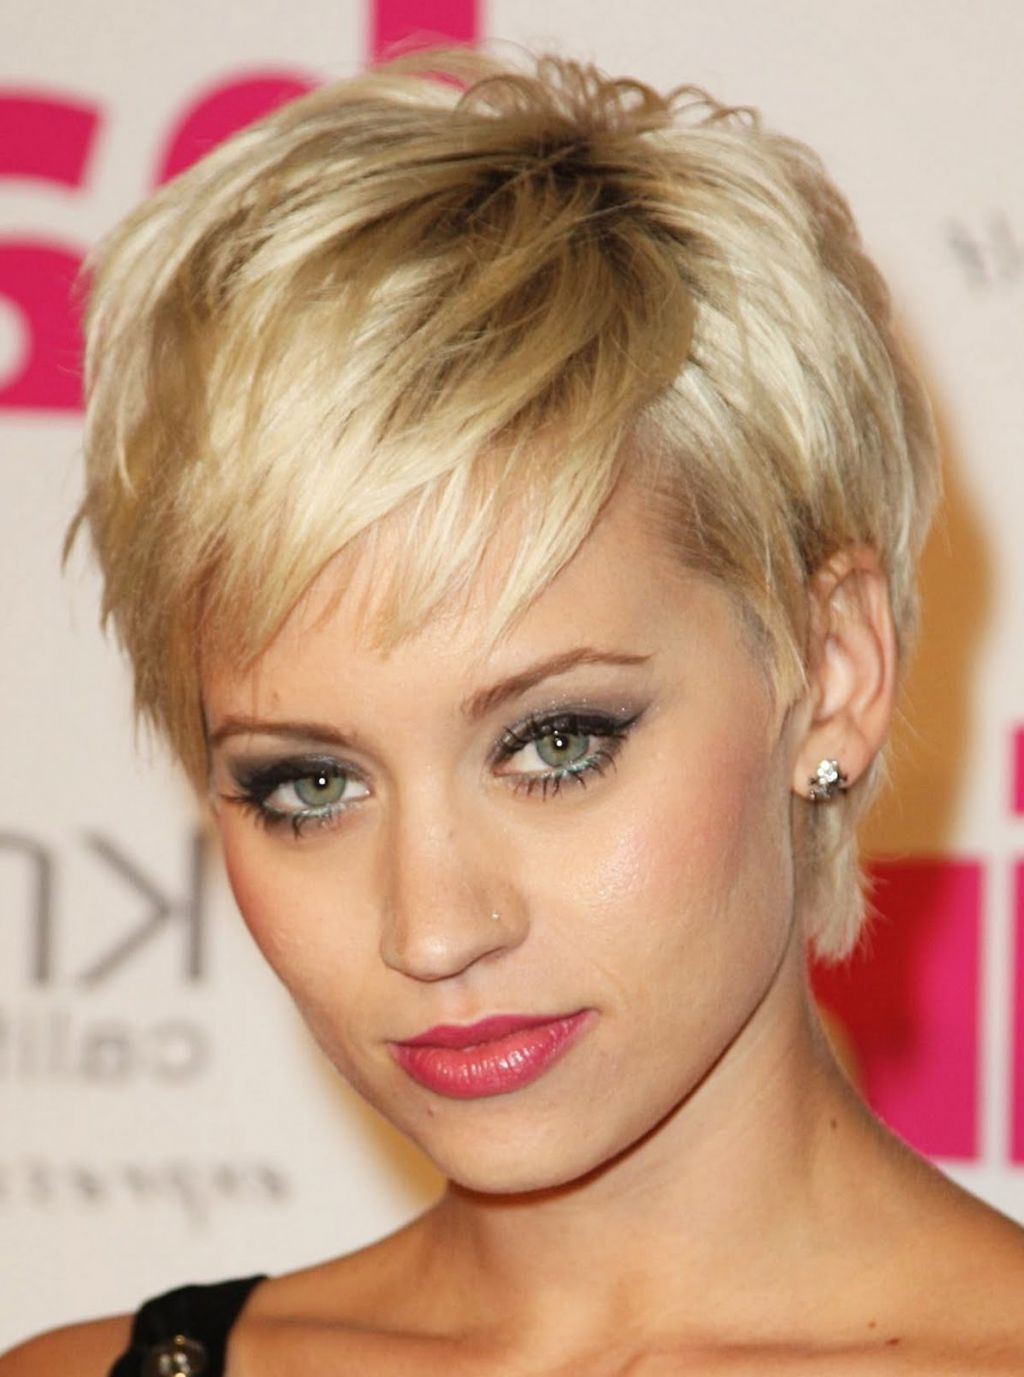 24 Beautiful Short Hairstyles For Thin Fine Hair: Short Hairstyles In Short Hairstyles For Thin Fine Hair (View 2 of 25)